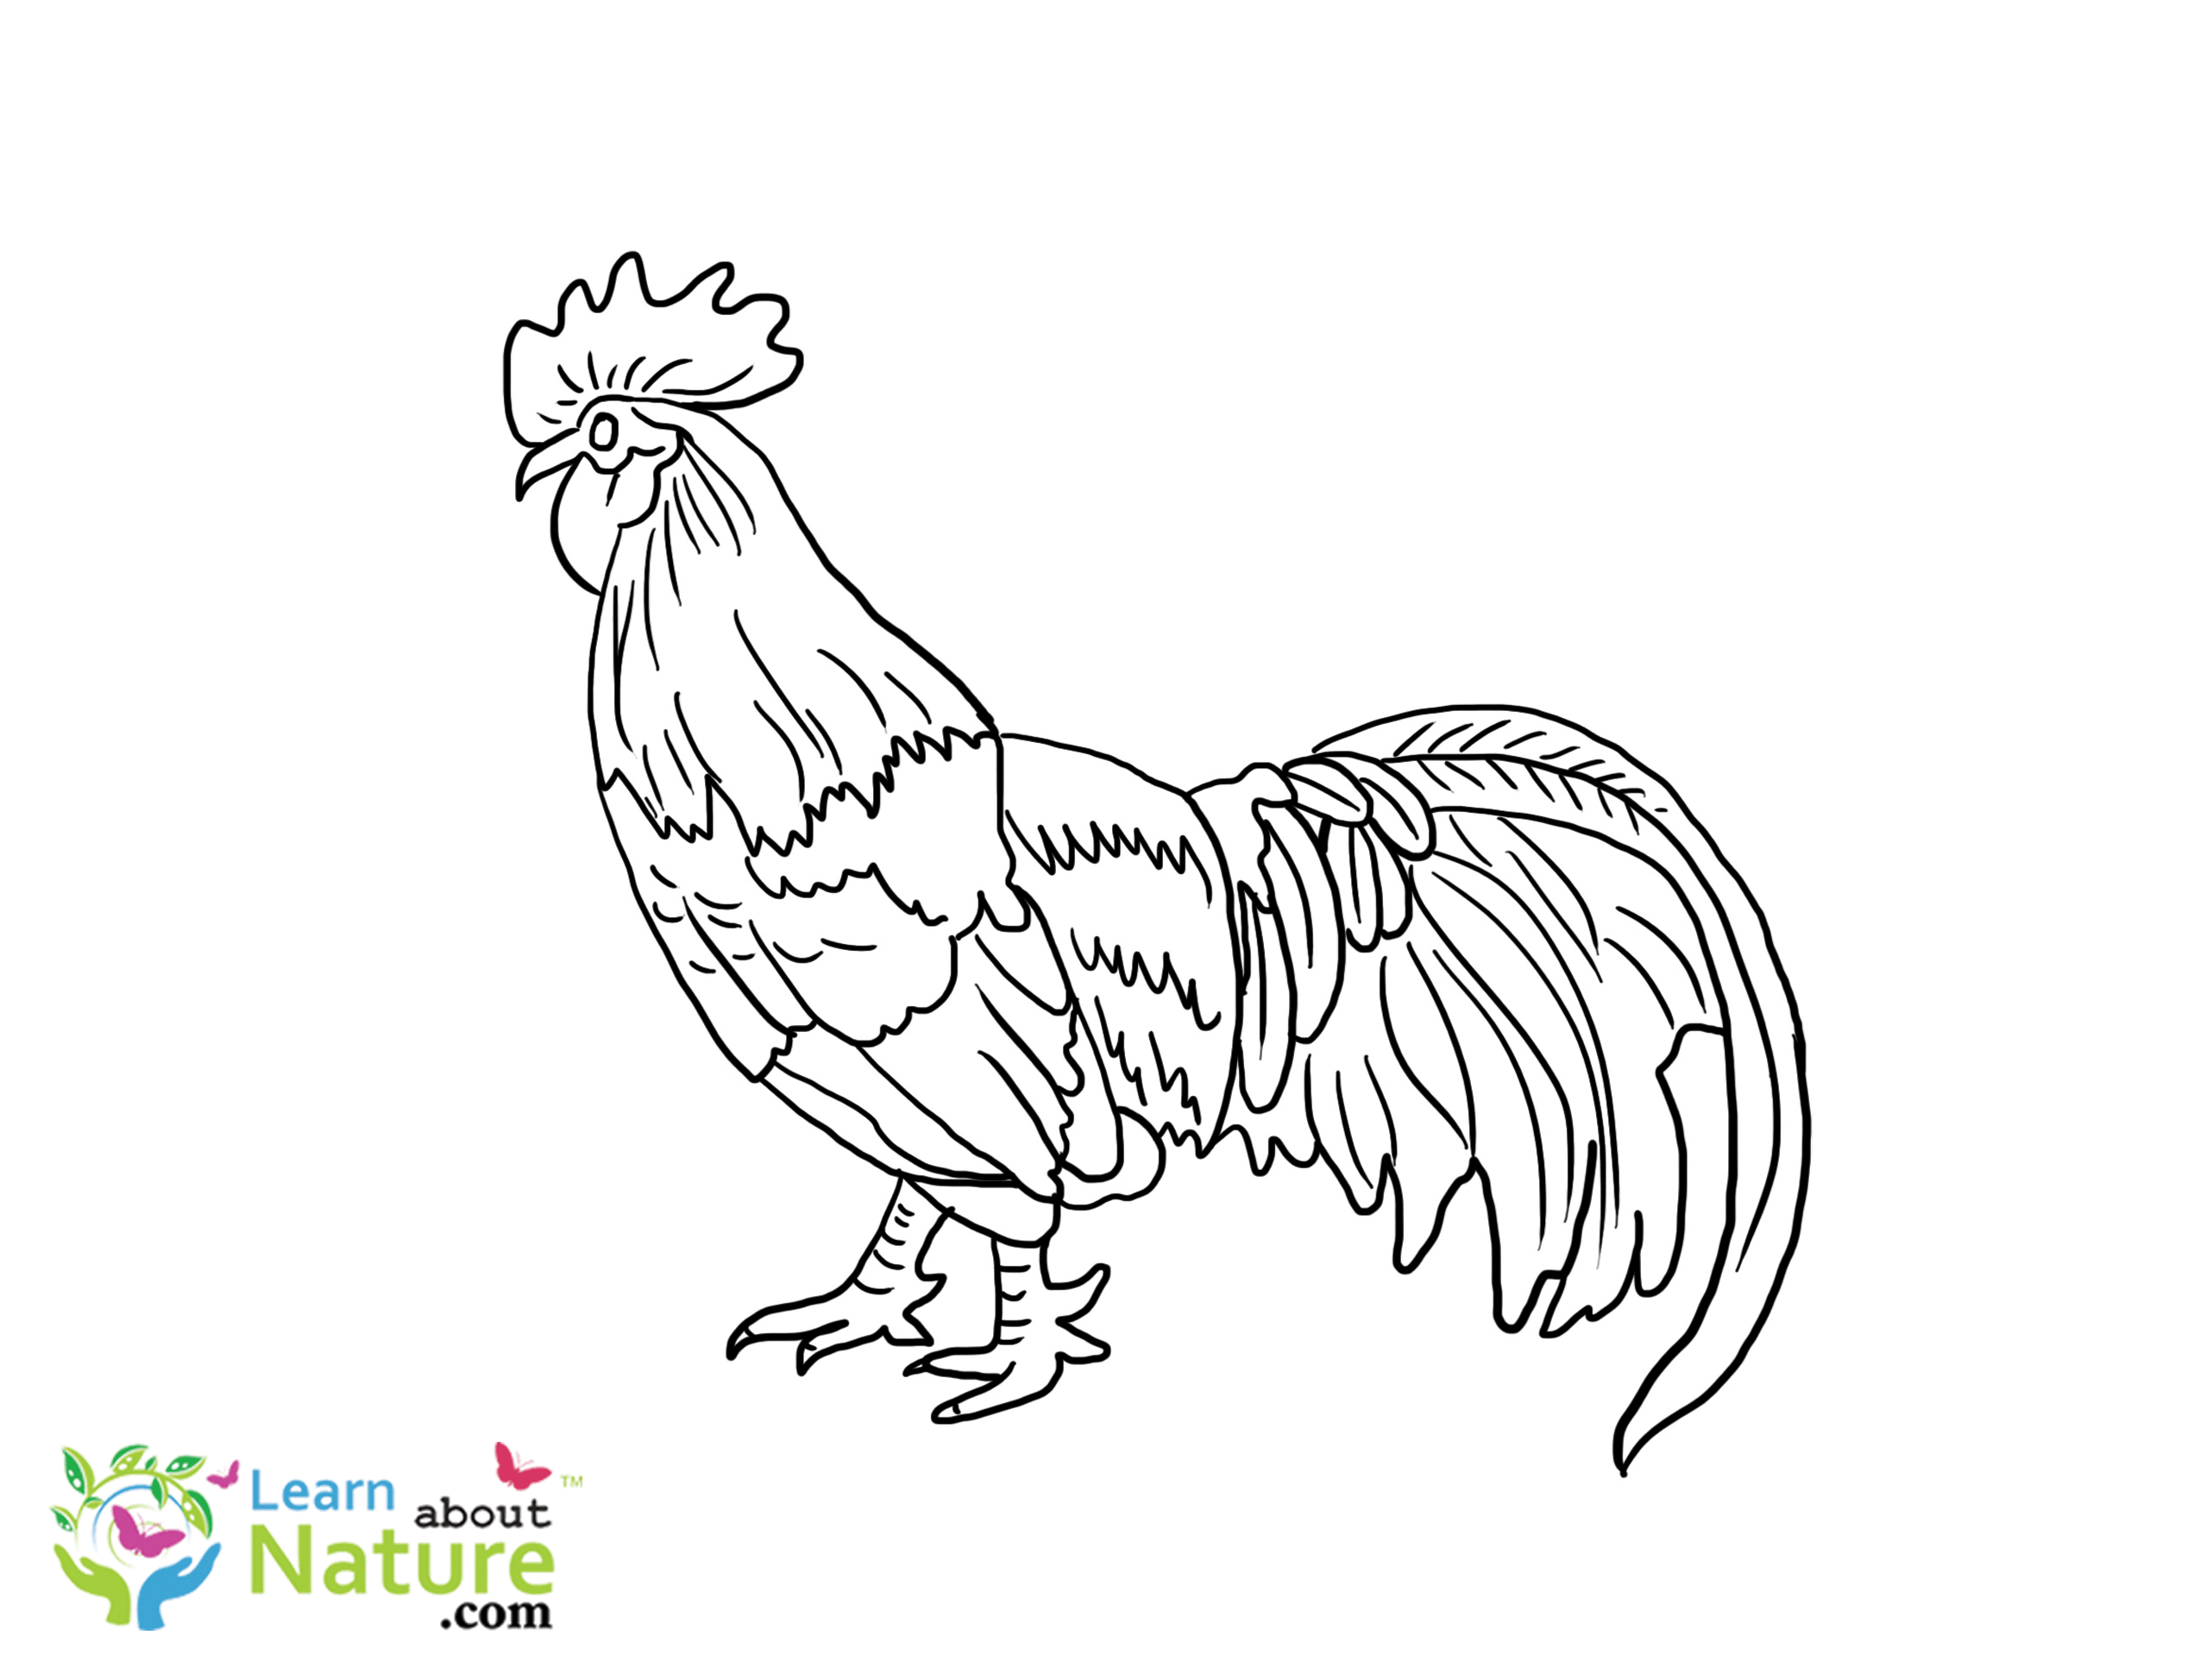 Rooster Coloring Page Rooster Coloring Page 1 Learn About Nature